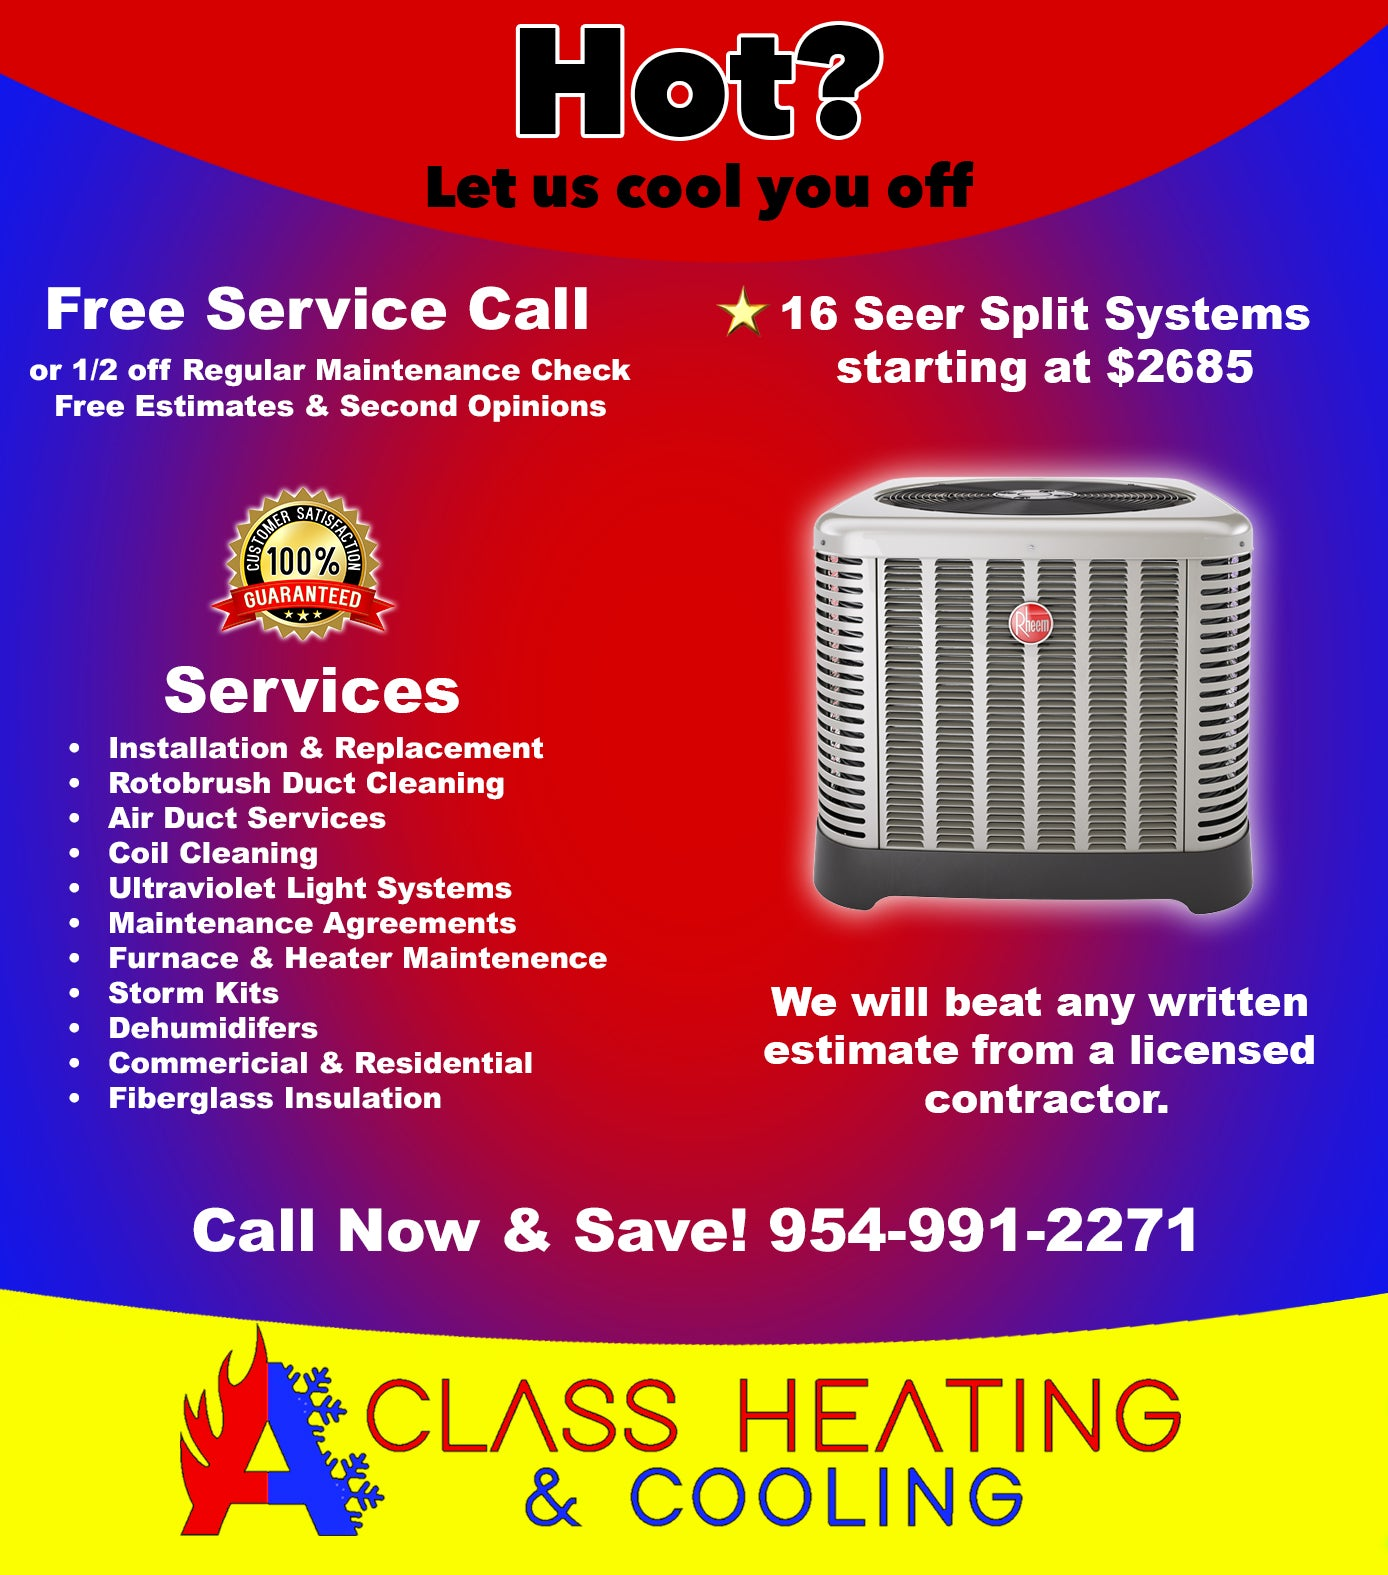 HVAC Deals in Florida by A Class Heating & Cooling